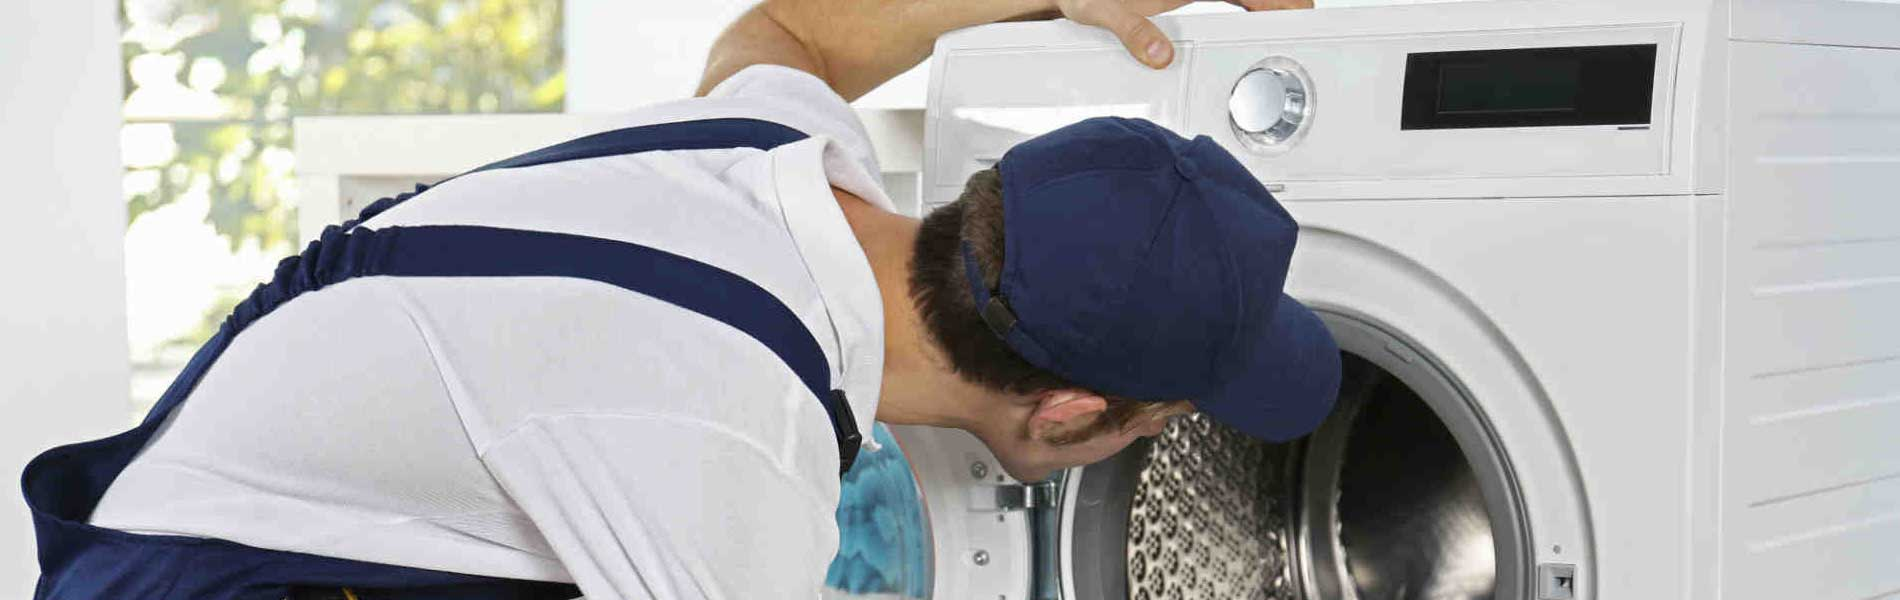 Washing Machine Repair in Panaiyur